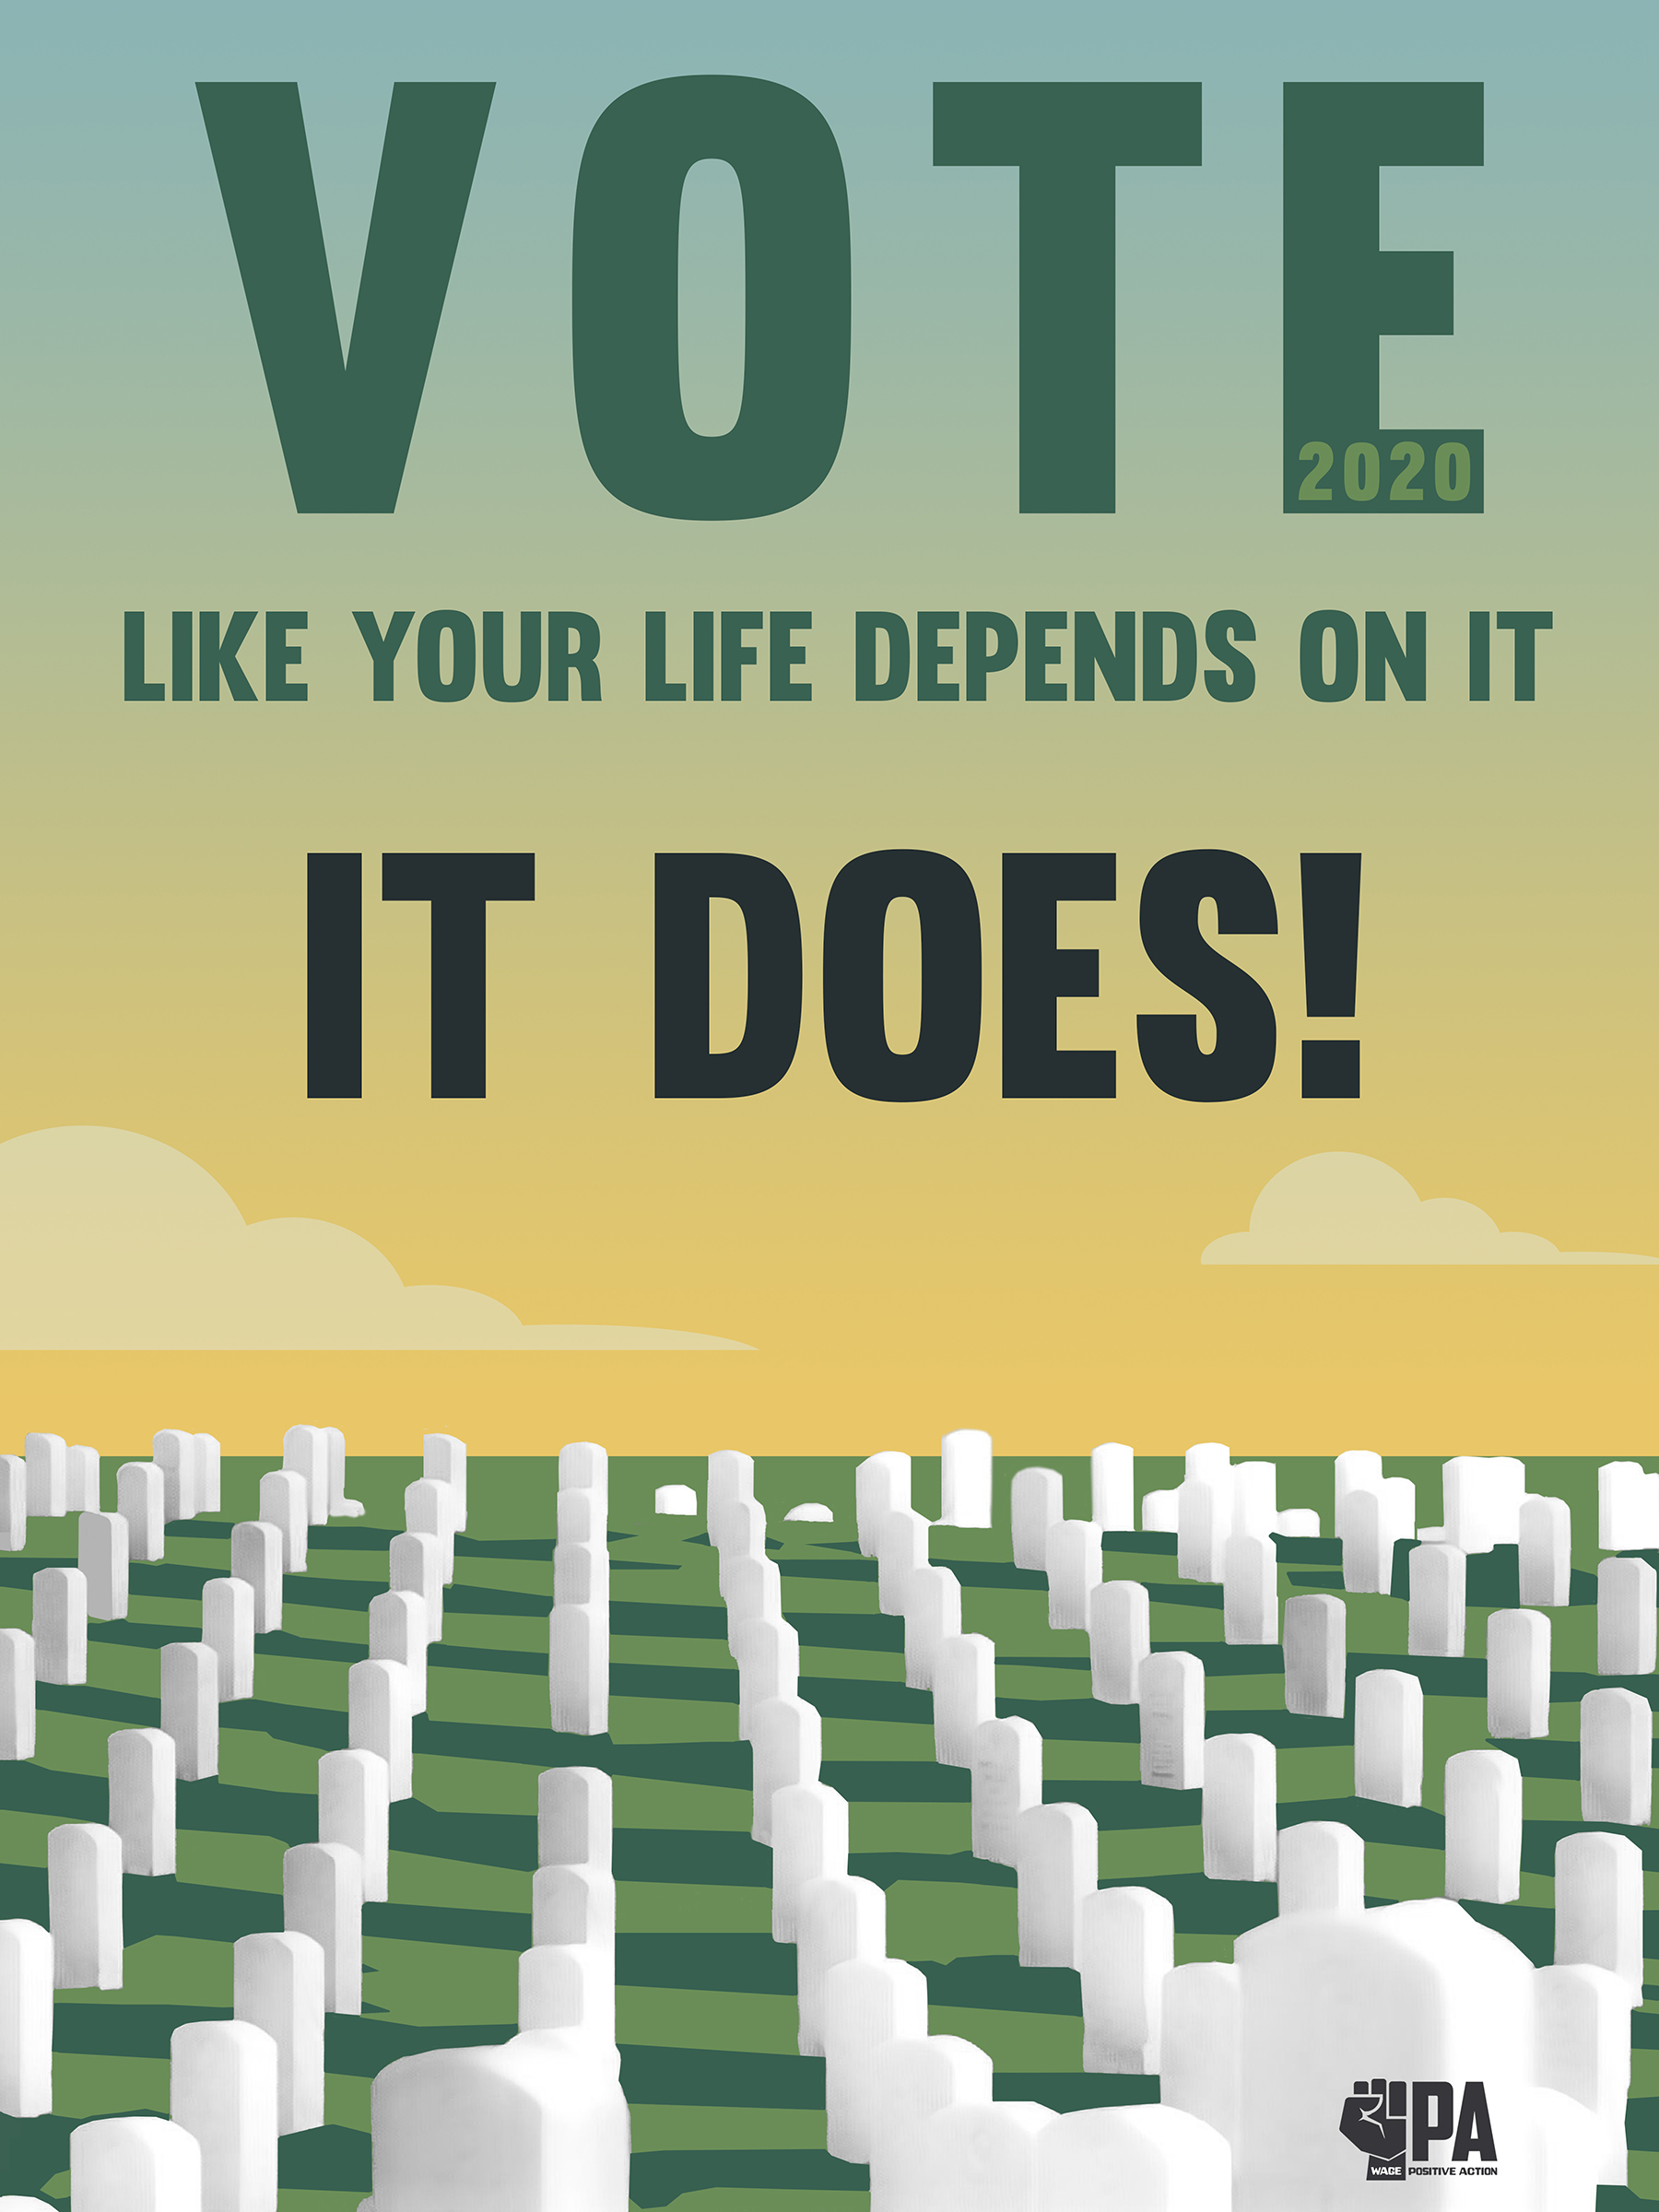 Vote Like Your Life Depends on It